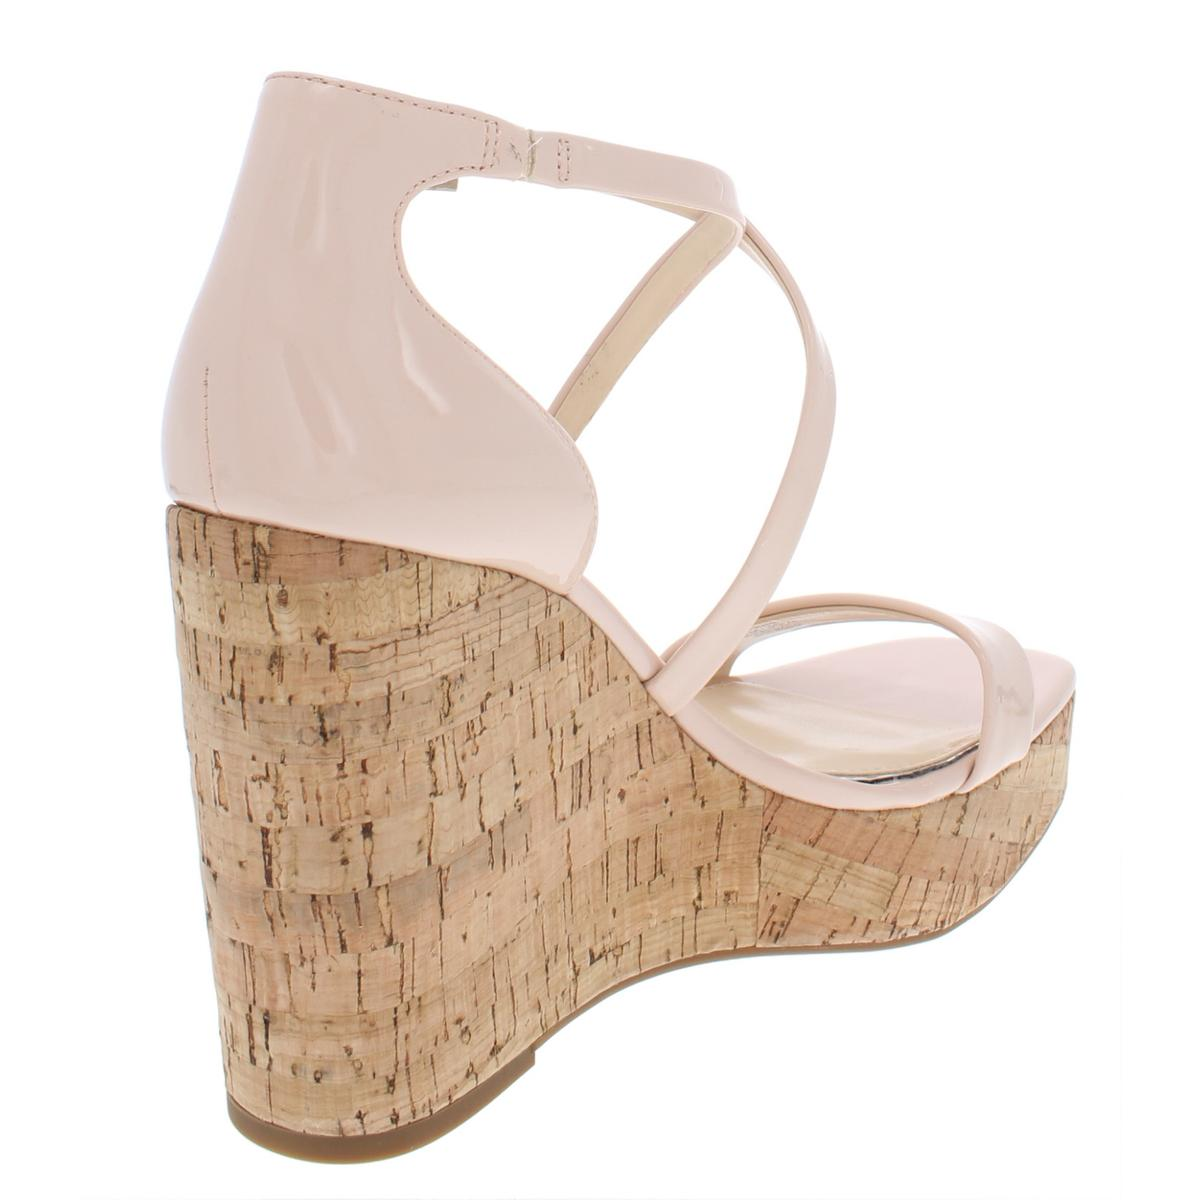 Jessica-Simpson-Womens-Stassi-Solid-Platform-Wedges-Sandals-BHFO-6733 thumbnail 4